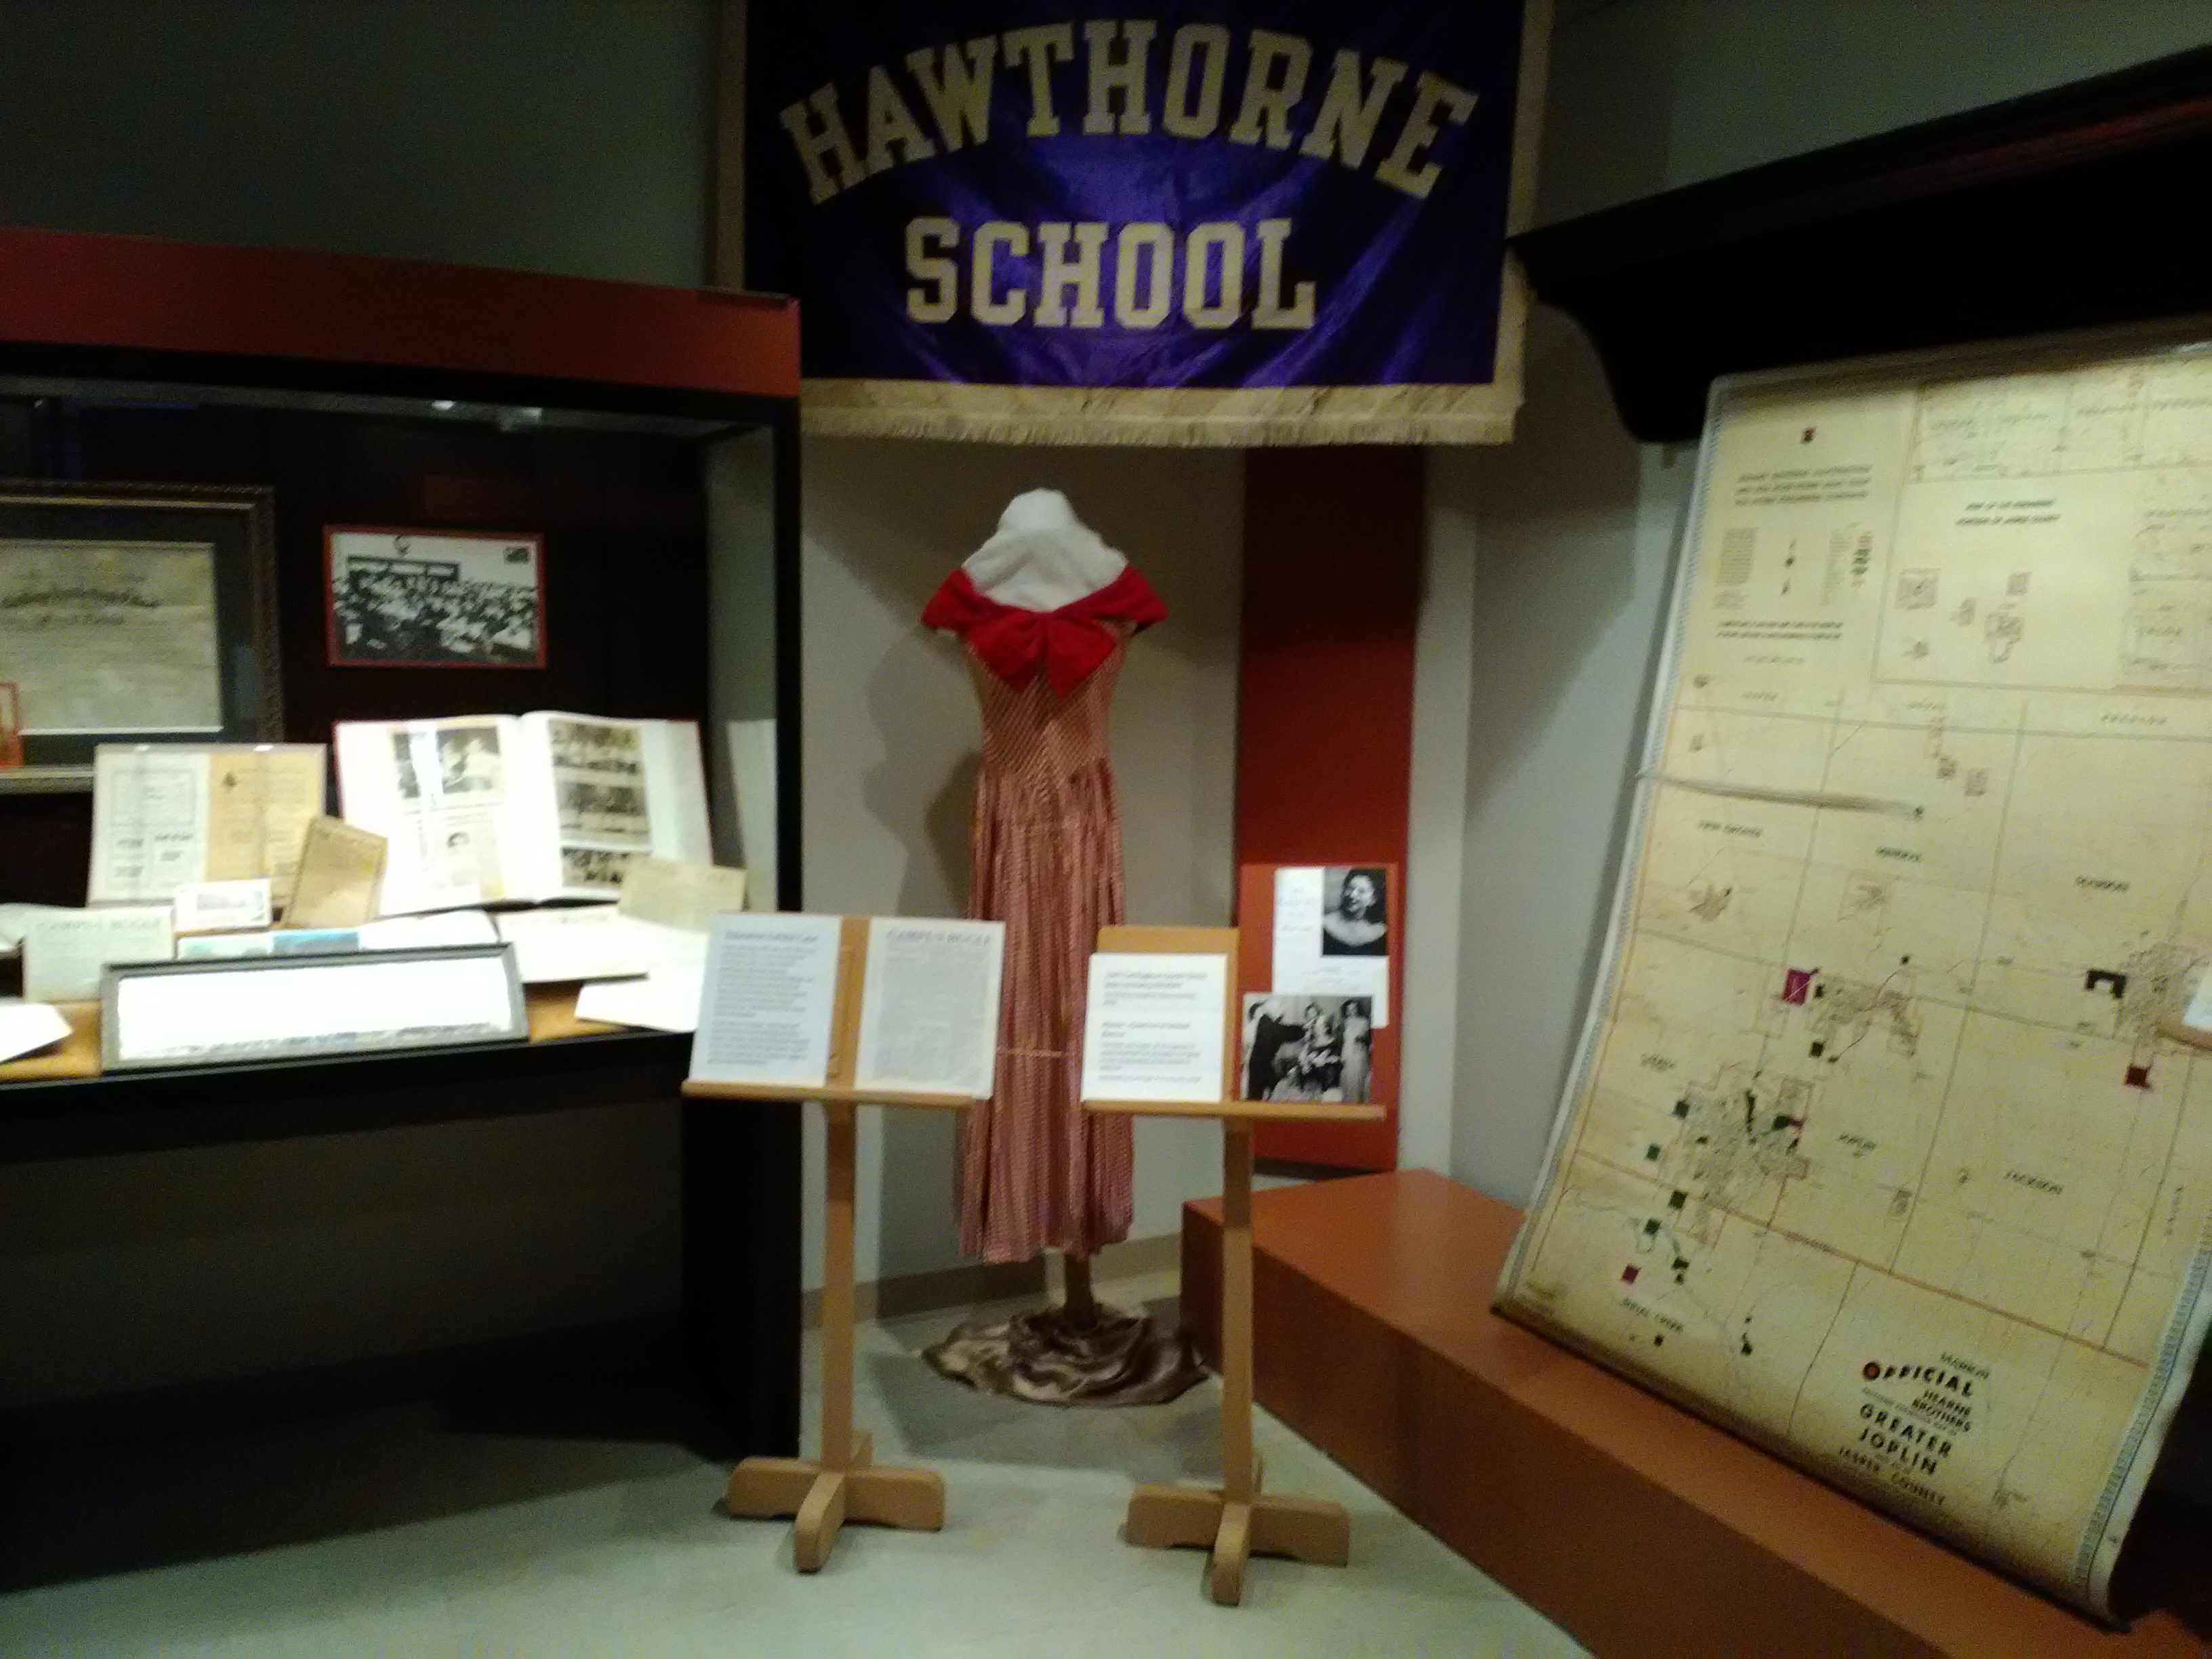 2017  Display of Carthage, Missouri, public schools within the larger 175th Anniversary of Carthage 2017 exhibit. The purple banner is from the former Hawthorne School located on West Central Avenue.